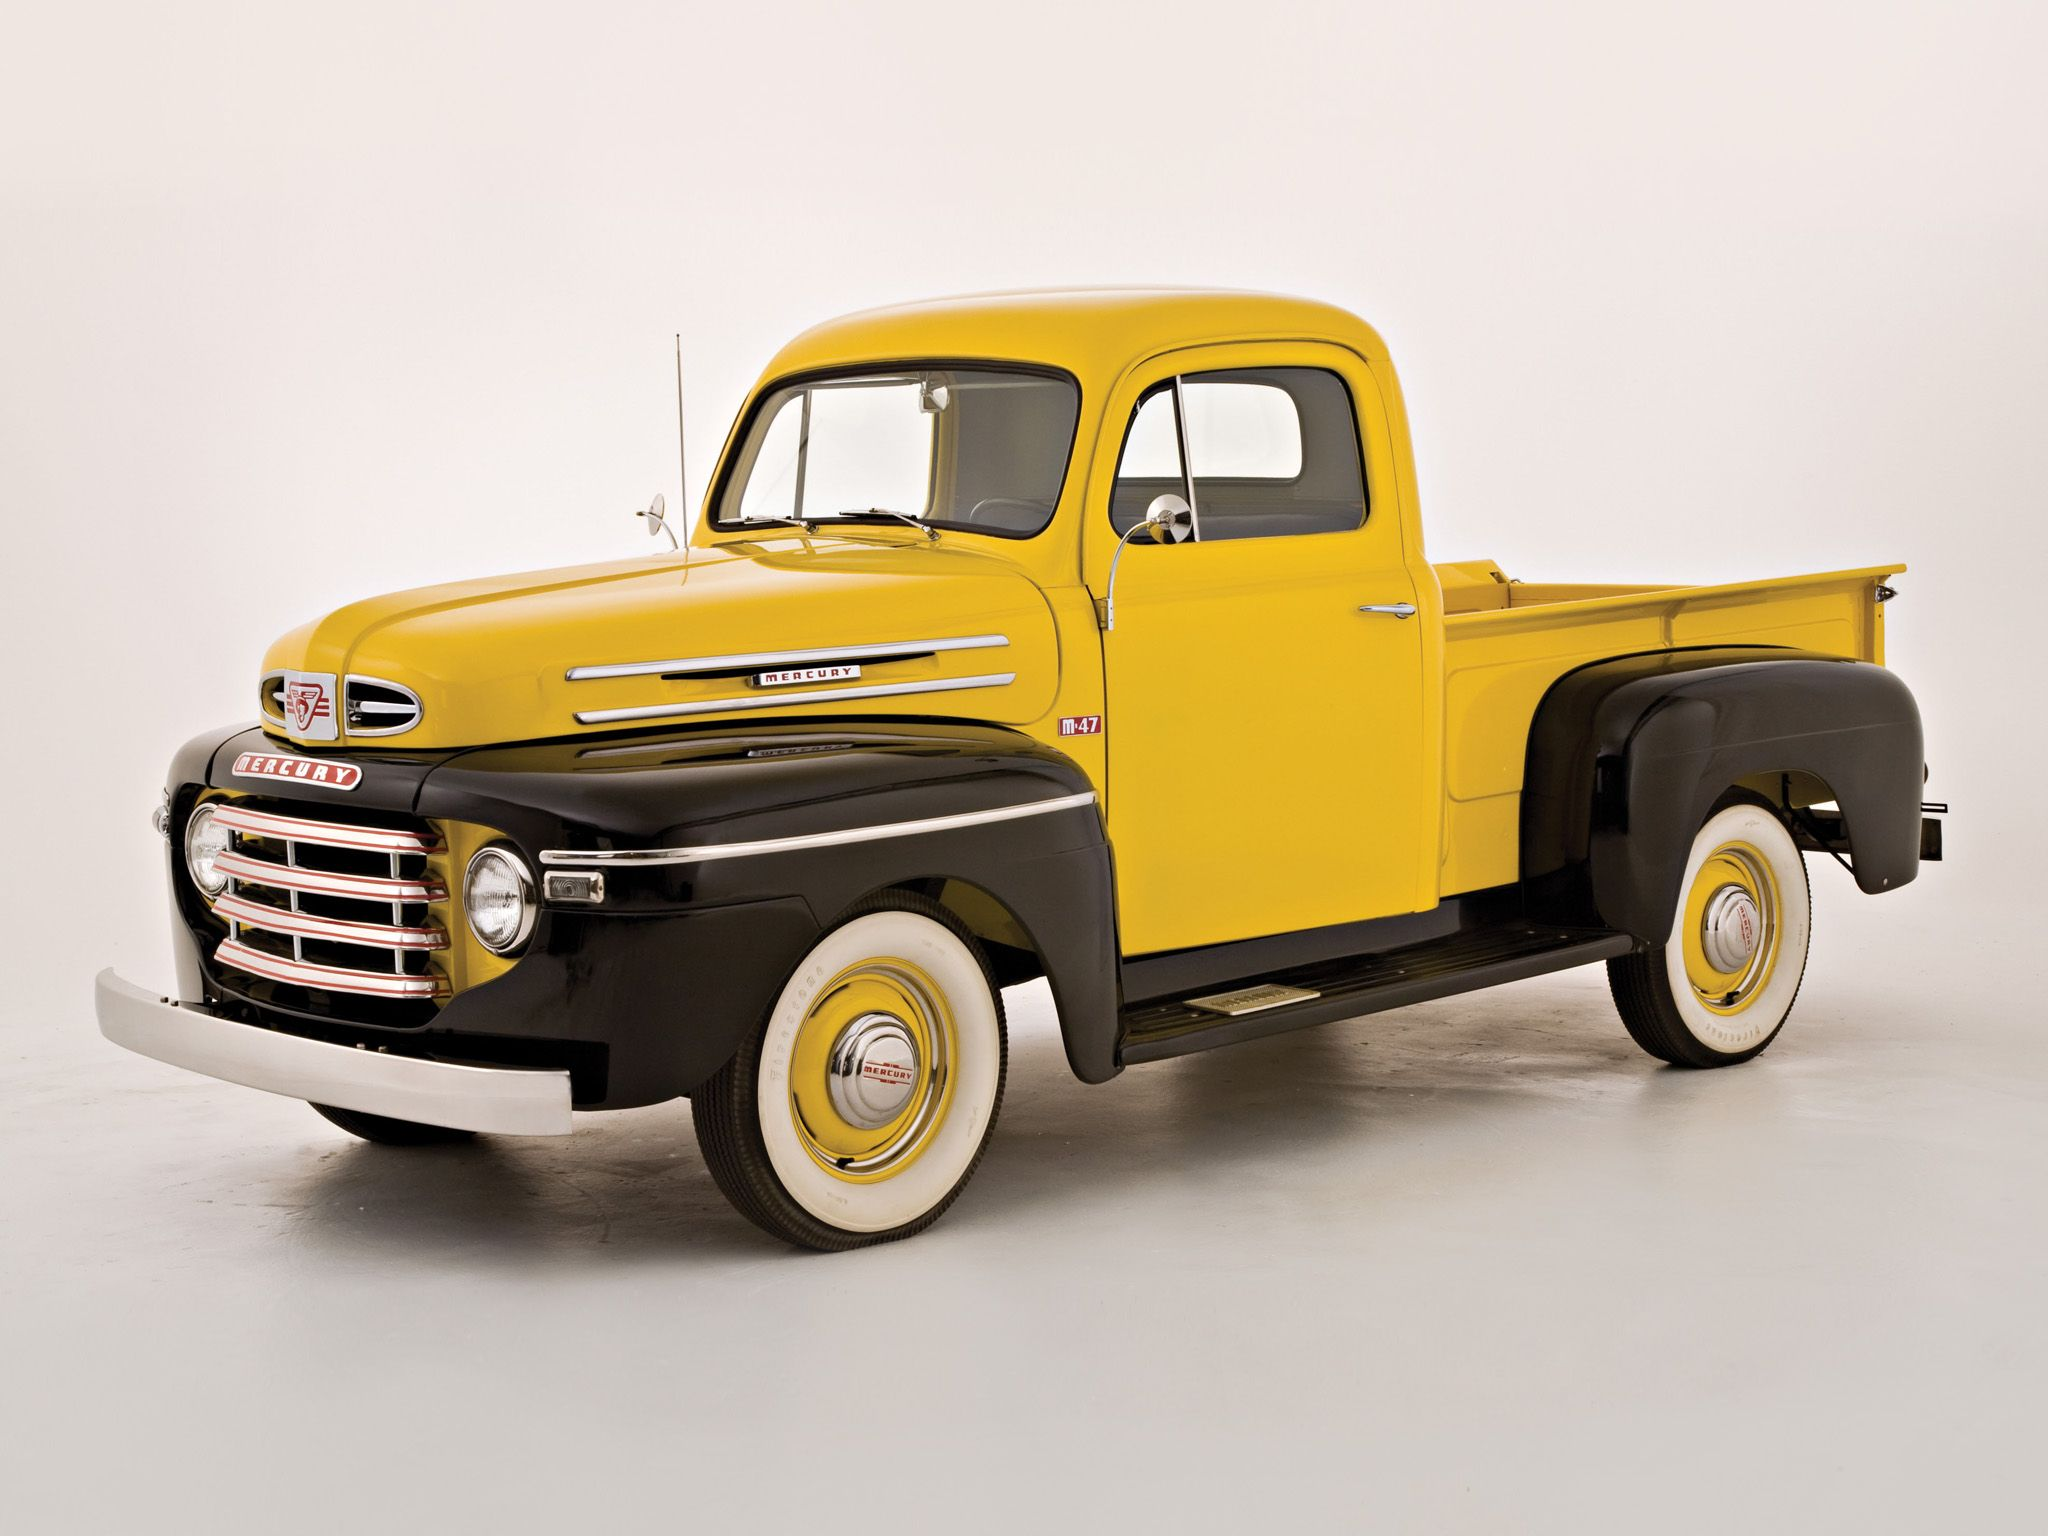 1948 mercury pickup truck was sold by rm auctions phoenix on friday january automobiles of arizona